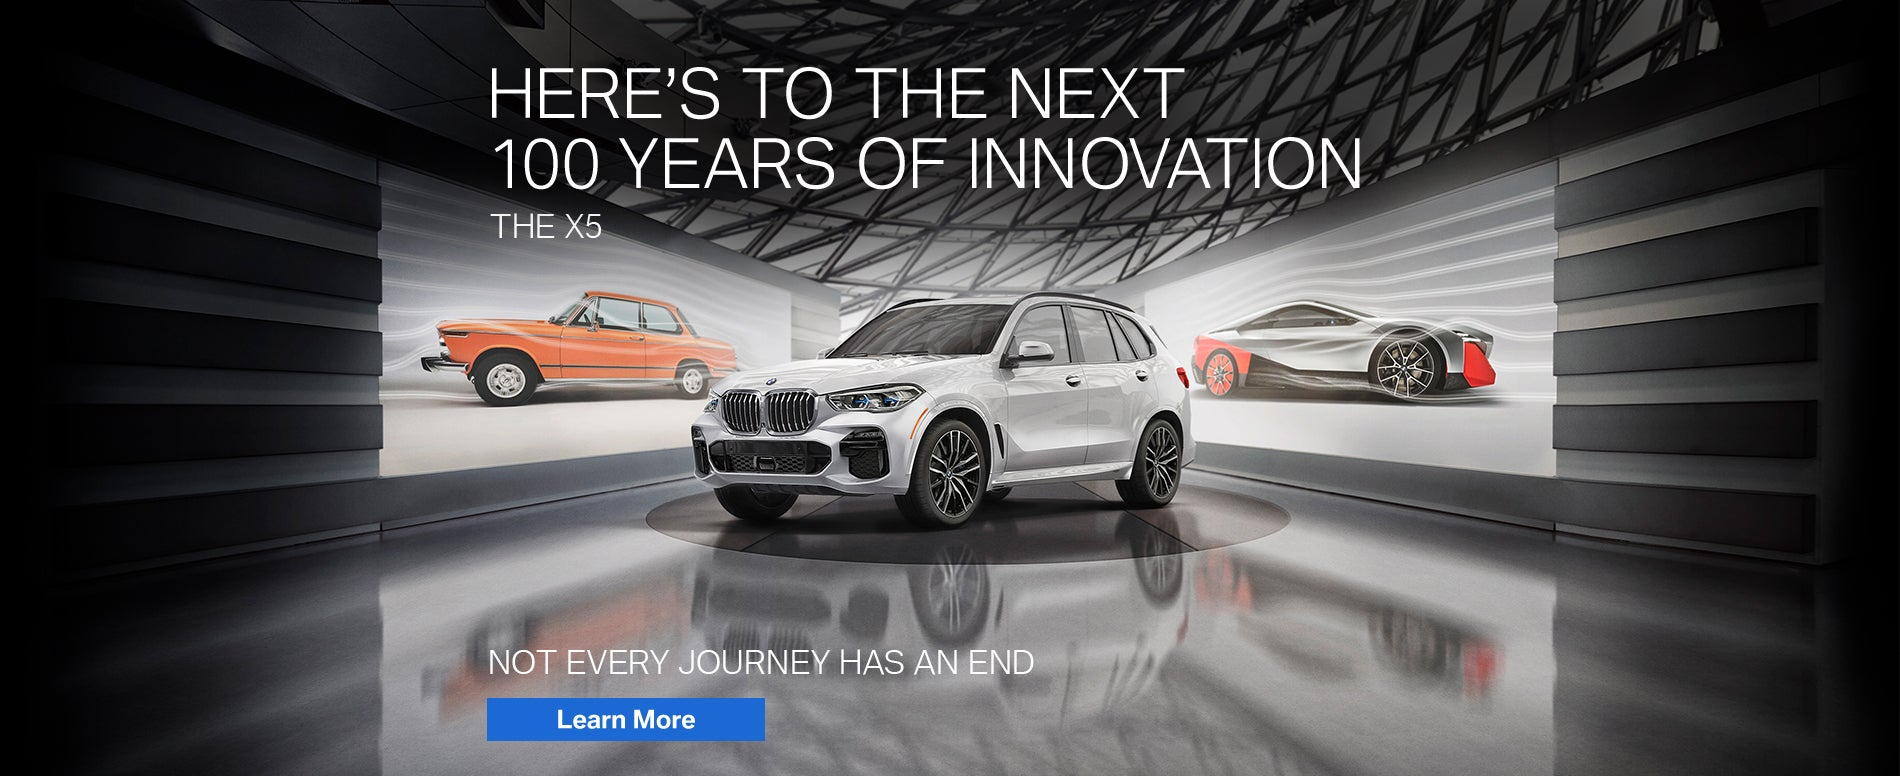 Used Car Dealerships Raleigh Nc >> Bmw Dealer In Raleigh Nc New Used Bmw Cars Suvs Cary Durham